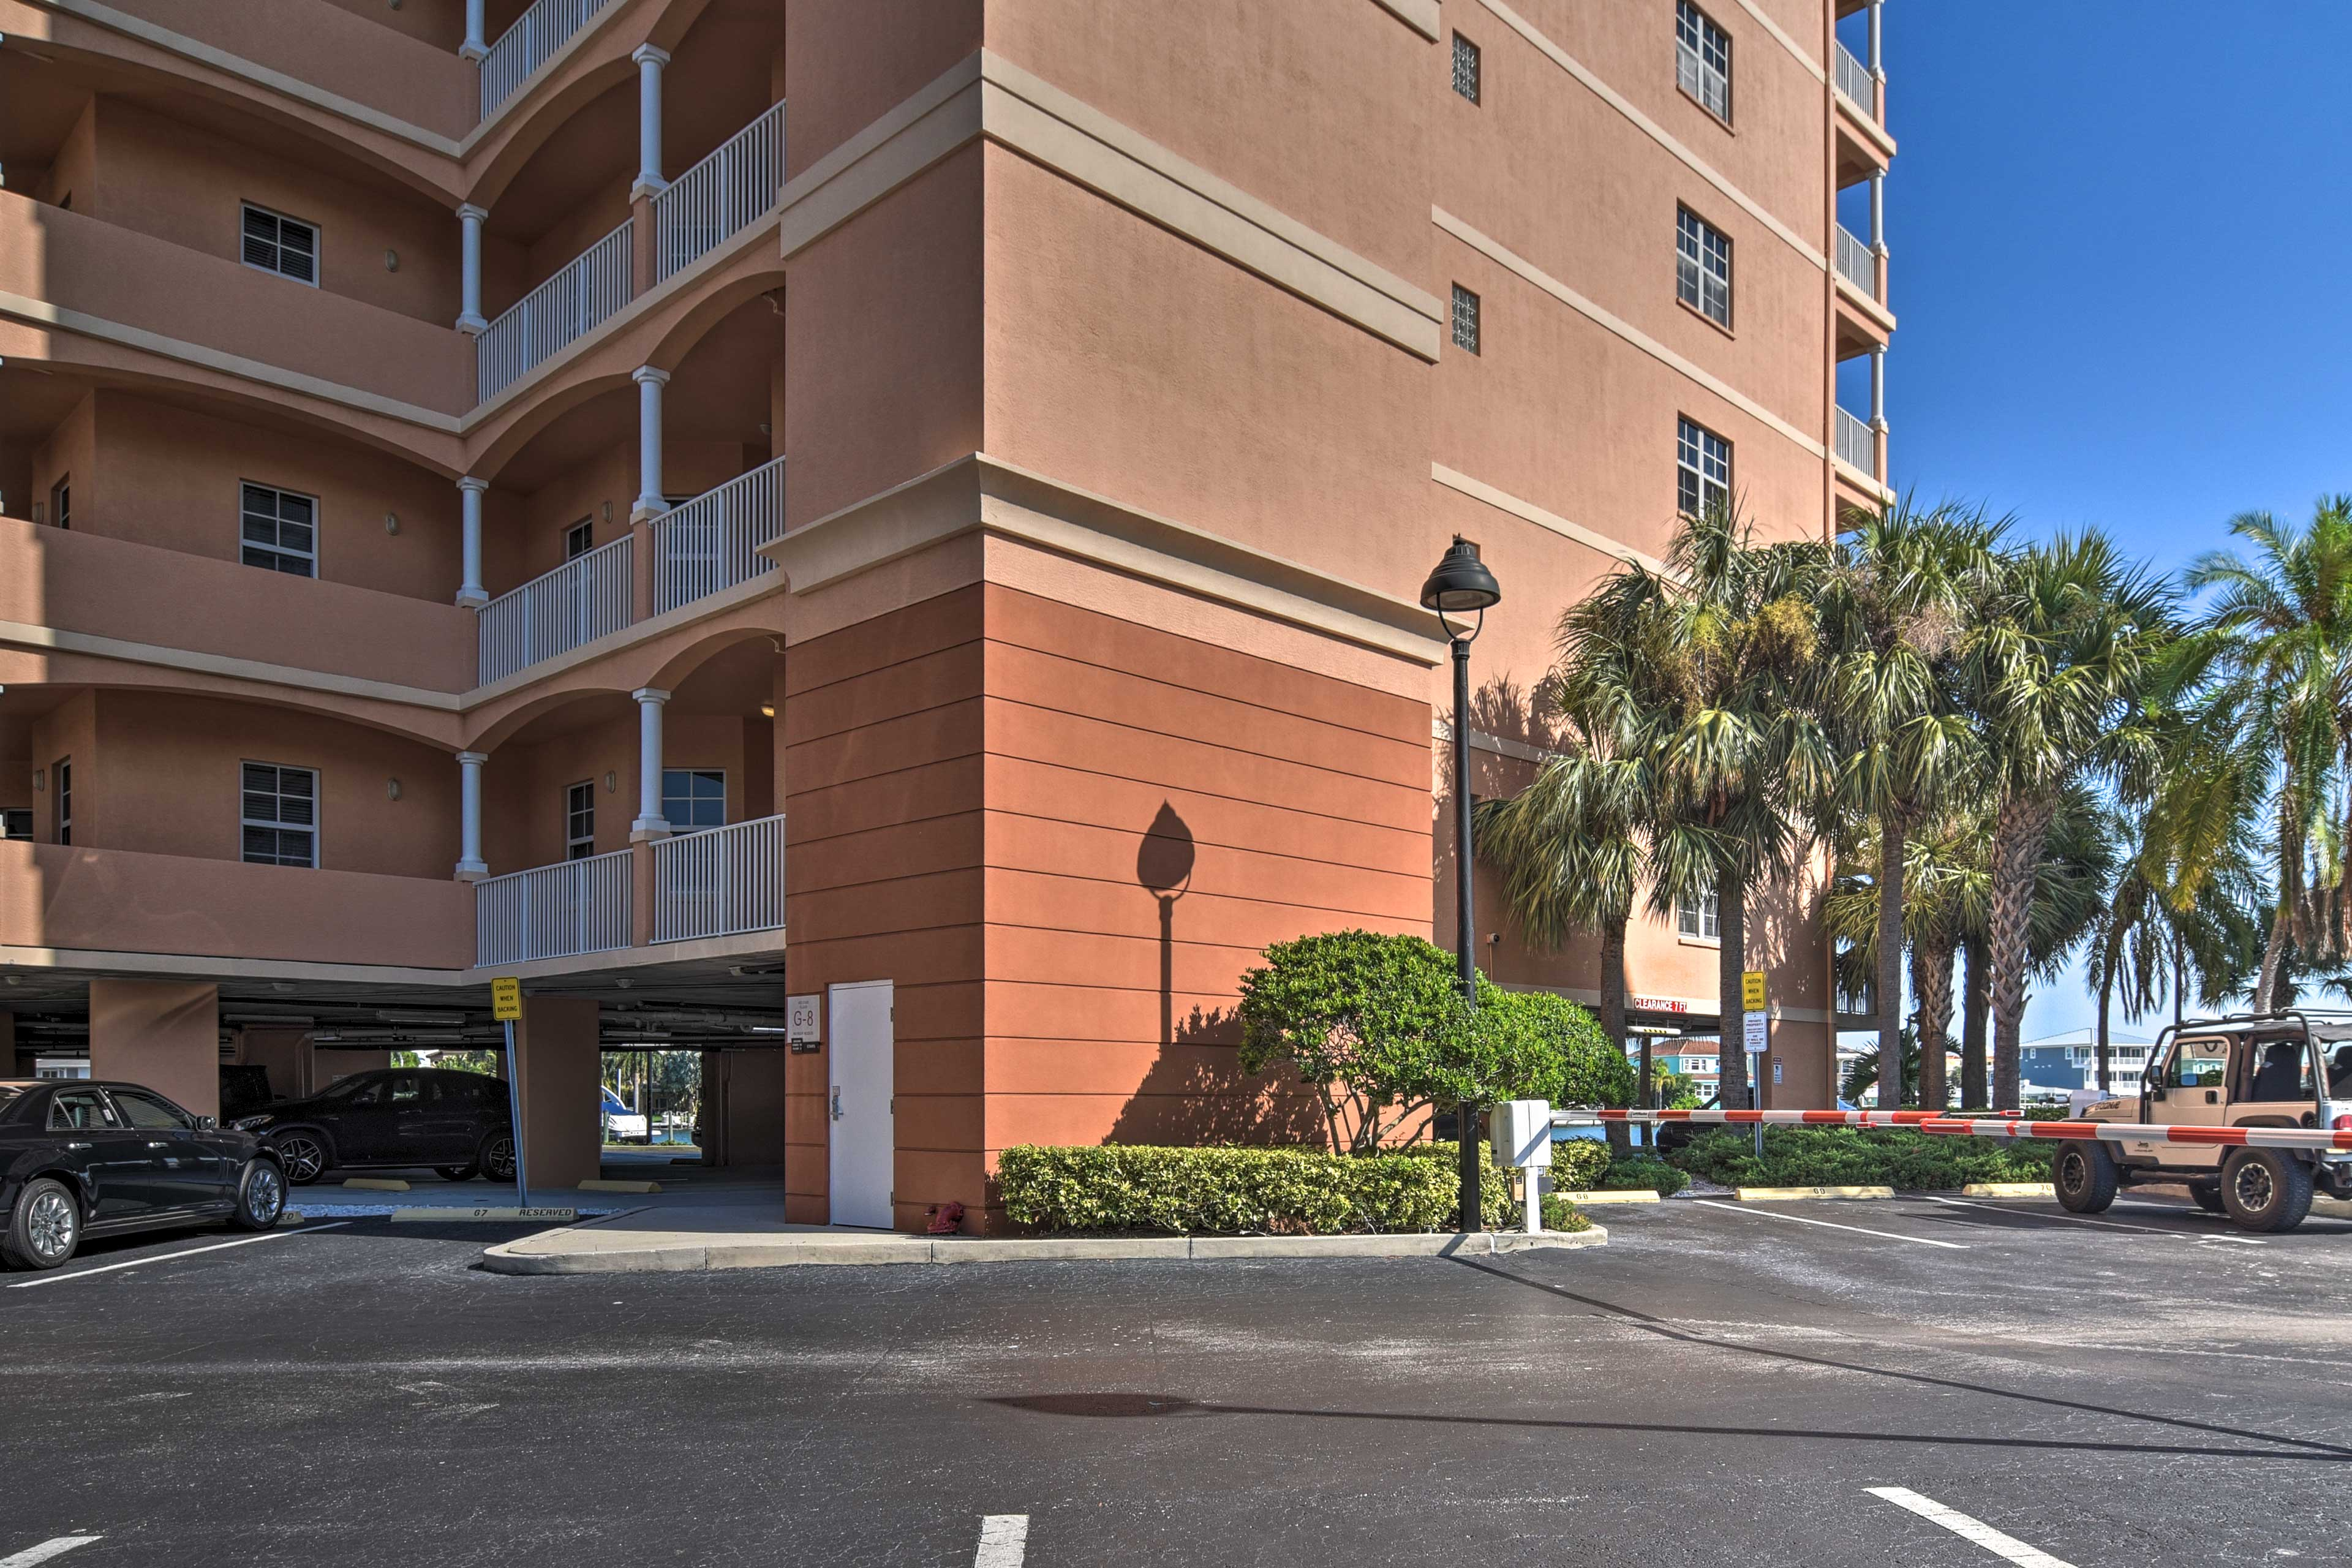 Condo Exterior | 2 Reserved Parking Spots